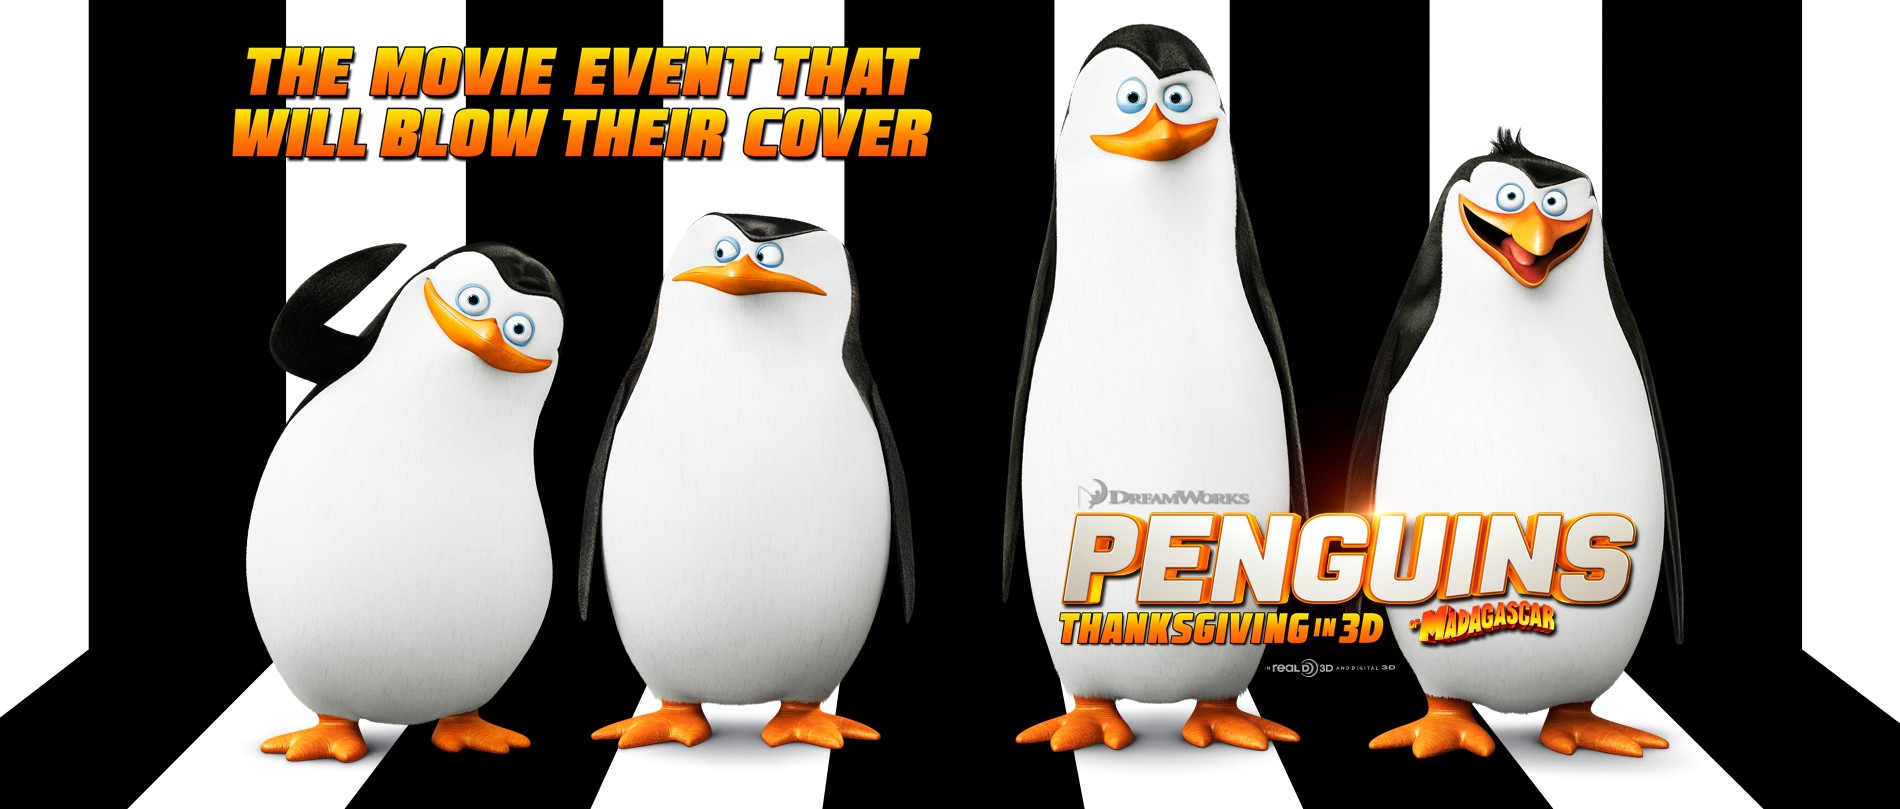 Penguins Of Madagascar 2014 The Animated Film Industry